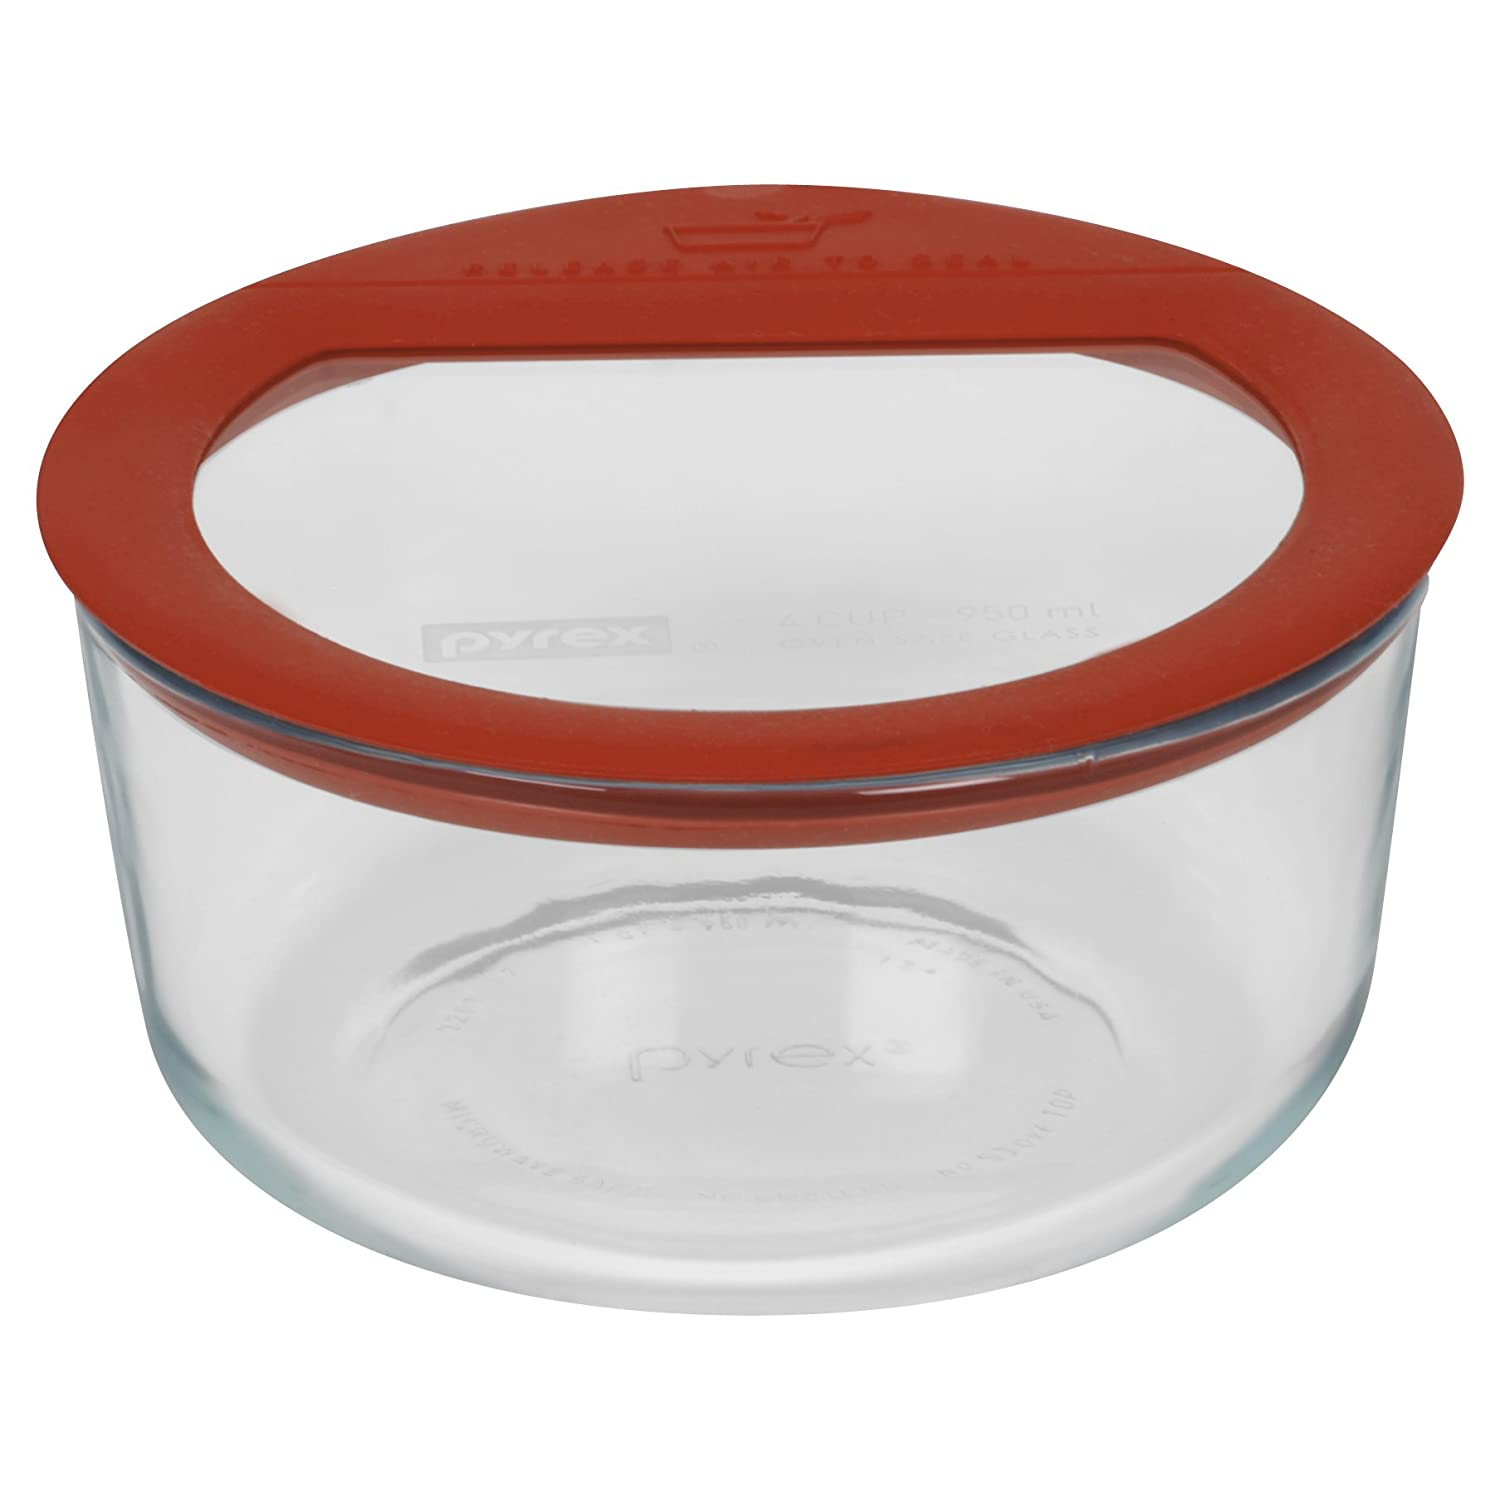 Pyrex Premium 4-Cup Round Glass Food Storage World Kitchen (PA) 1095691